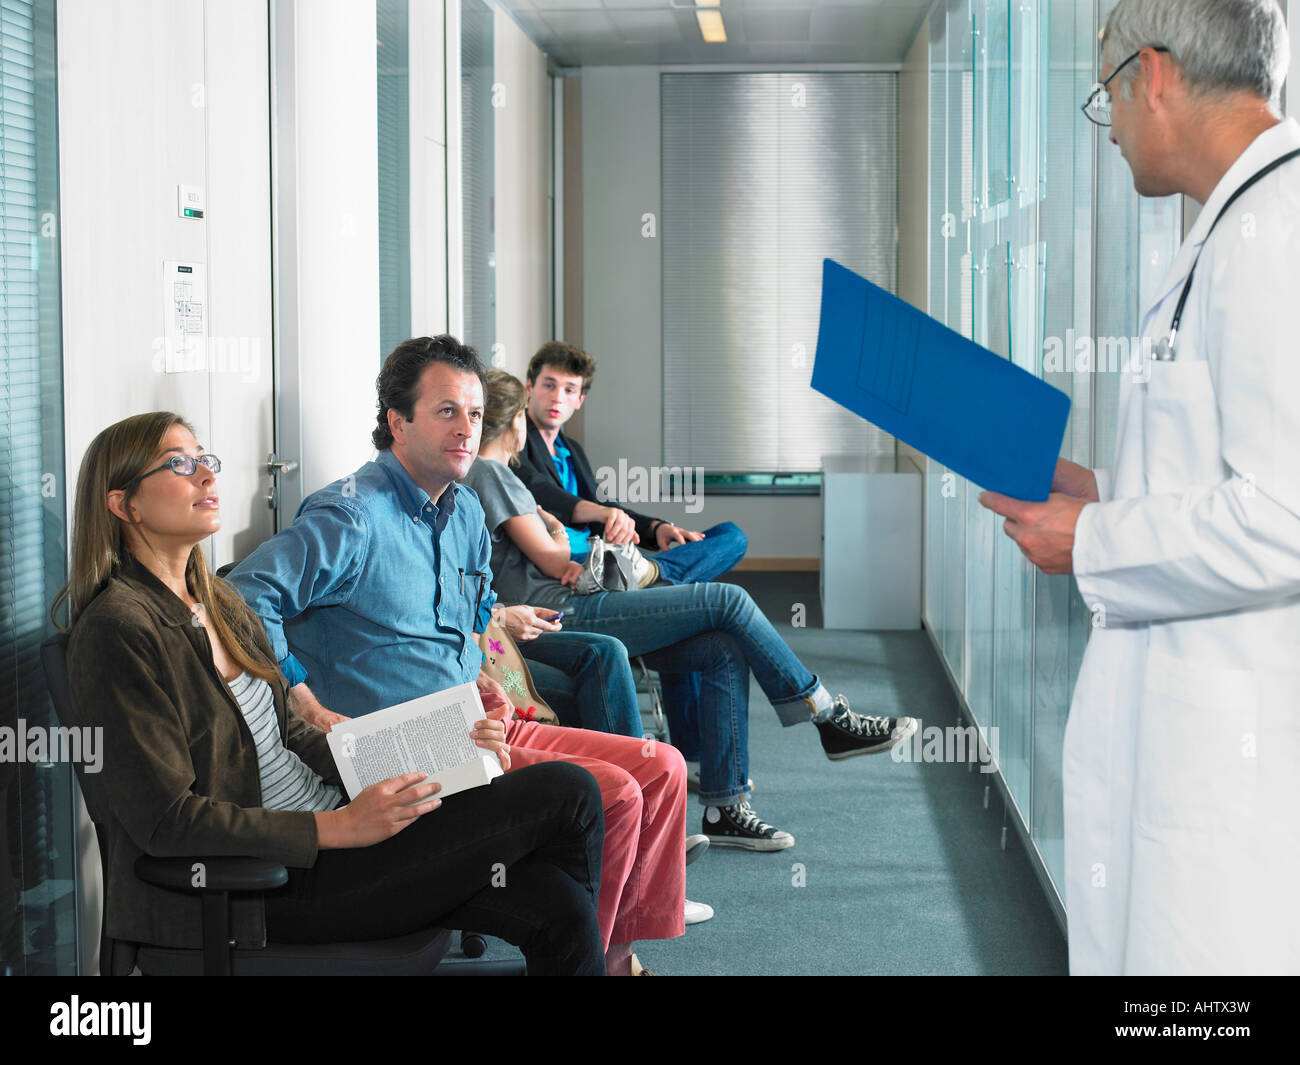 Male doctor calling for patients in hospital waiting room. - Stock Image